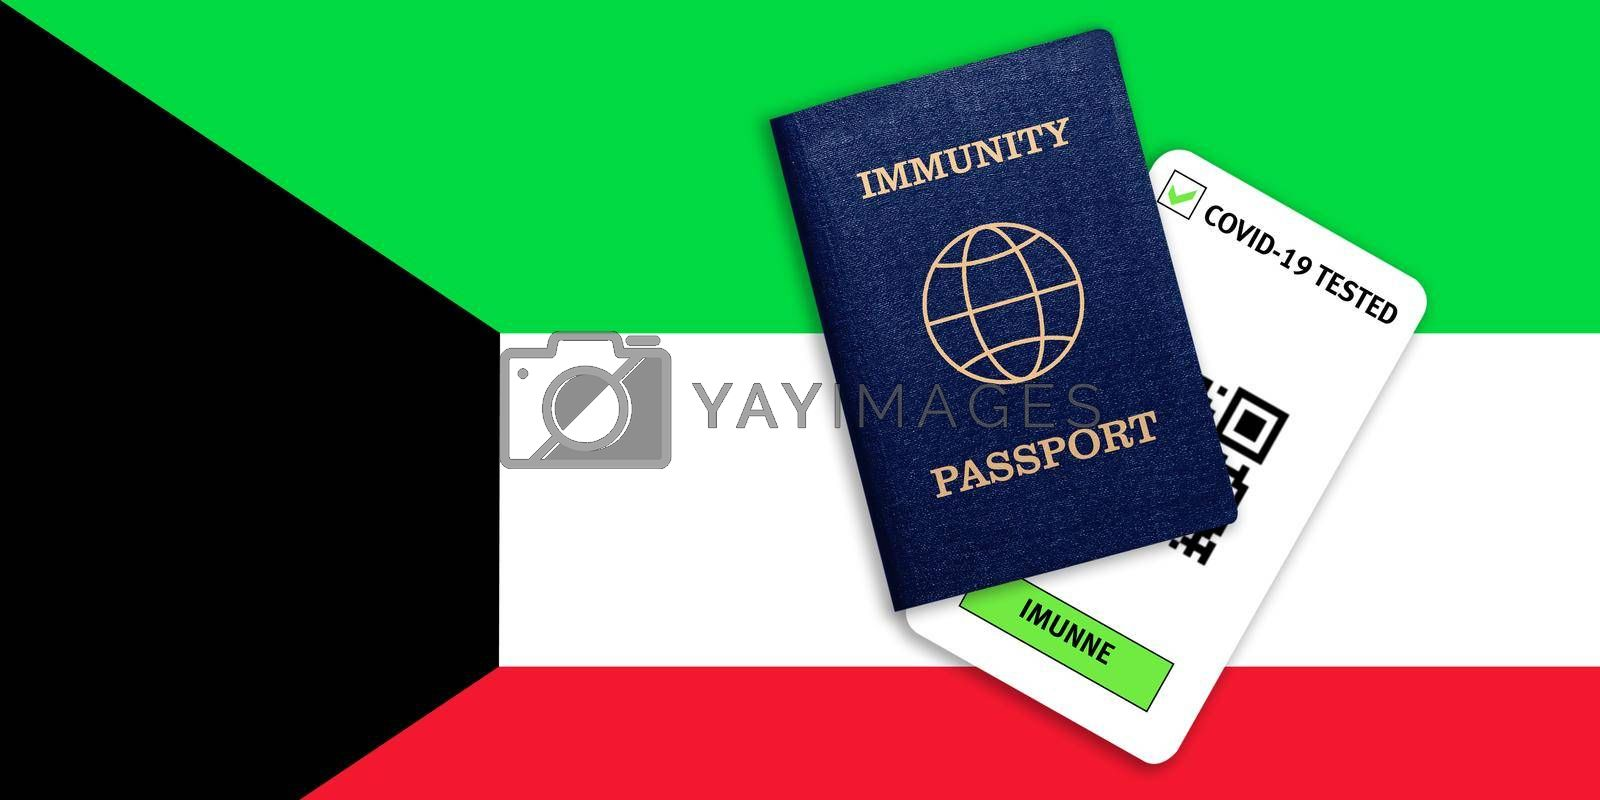 Concept of Immunity passport, certificate for traveling after pandemic for people who have had coronavirus or made vaccine and test result for COVID-19 on flag of Kuwait